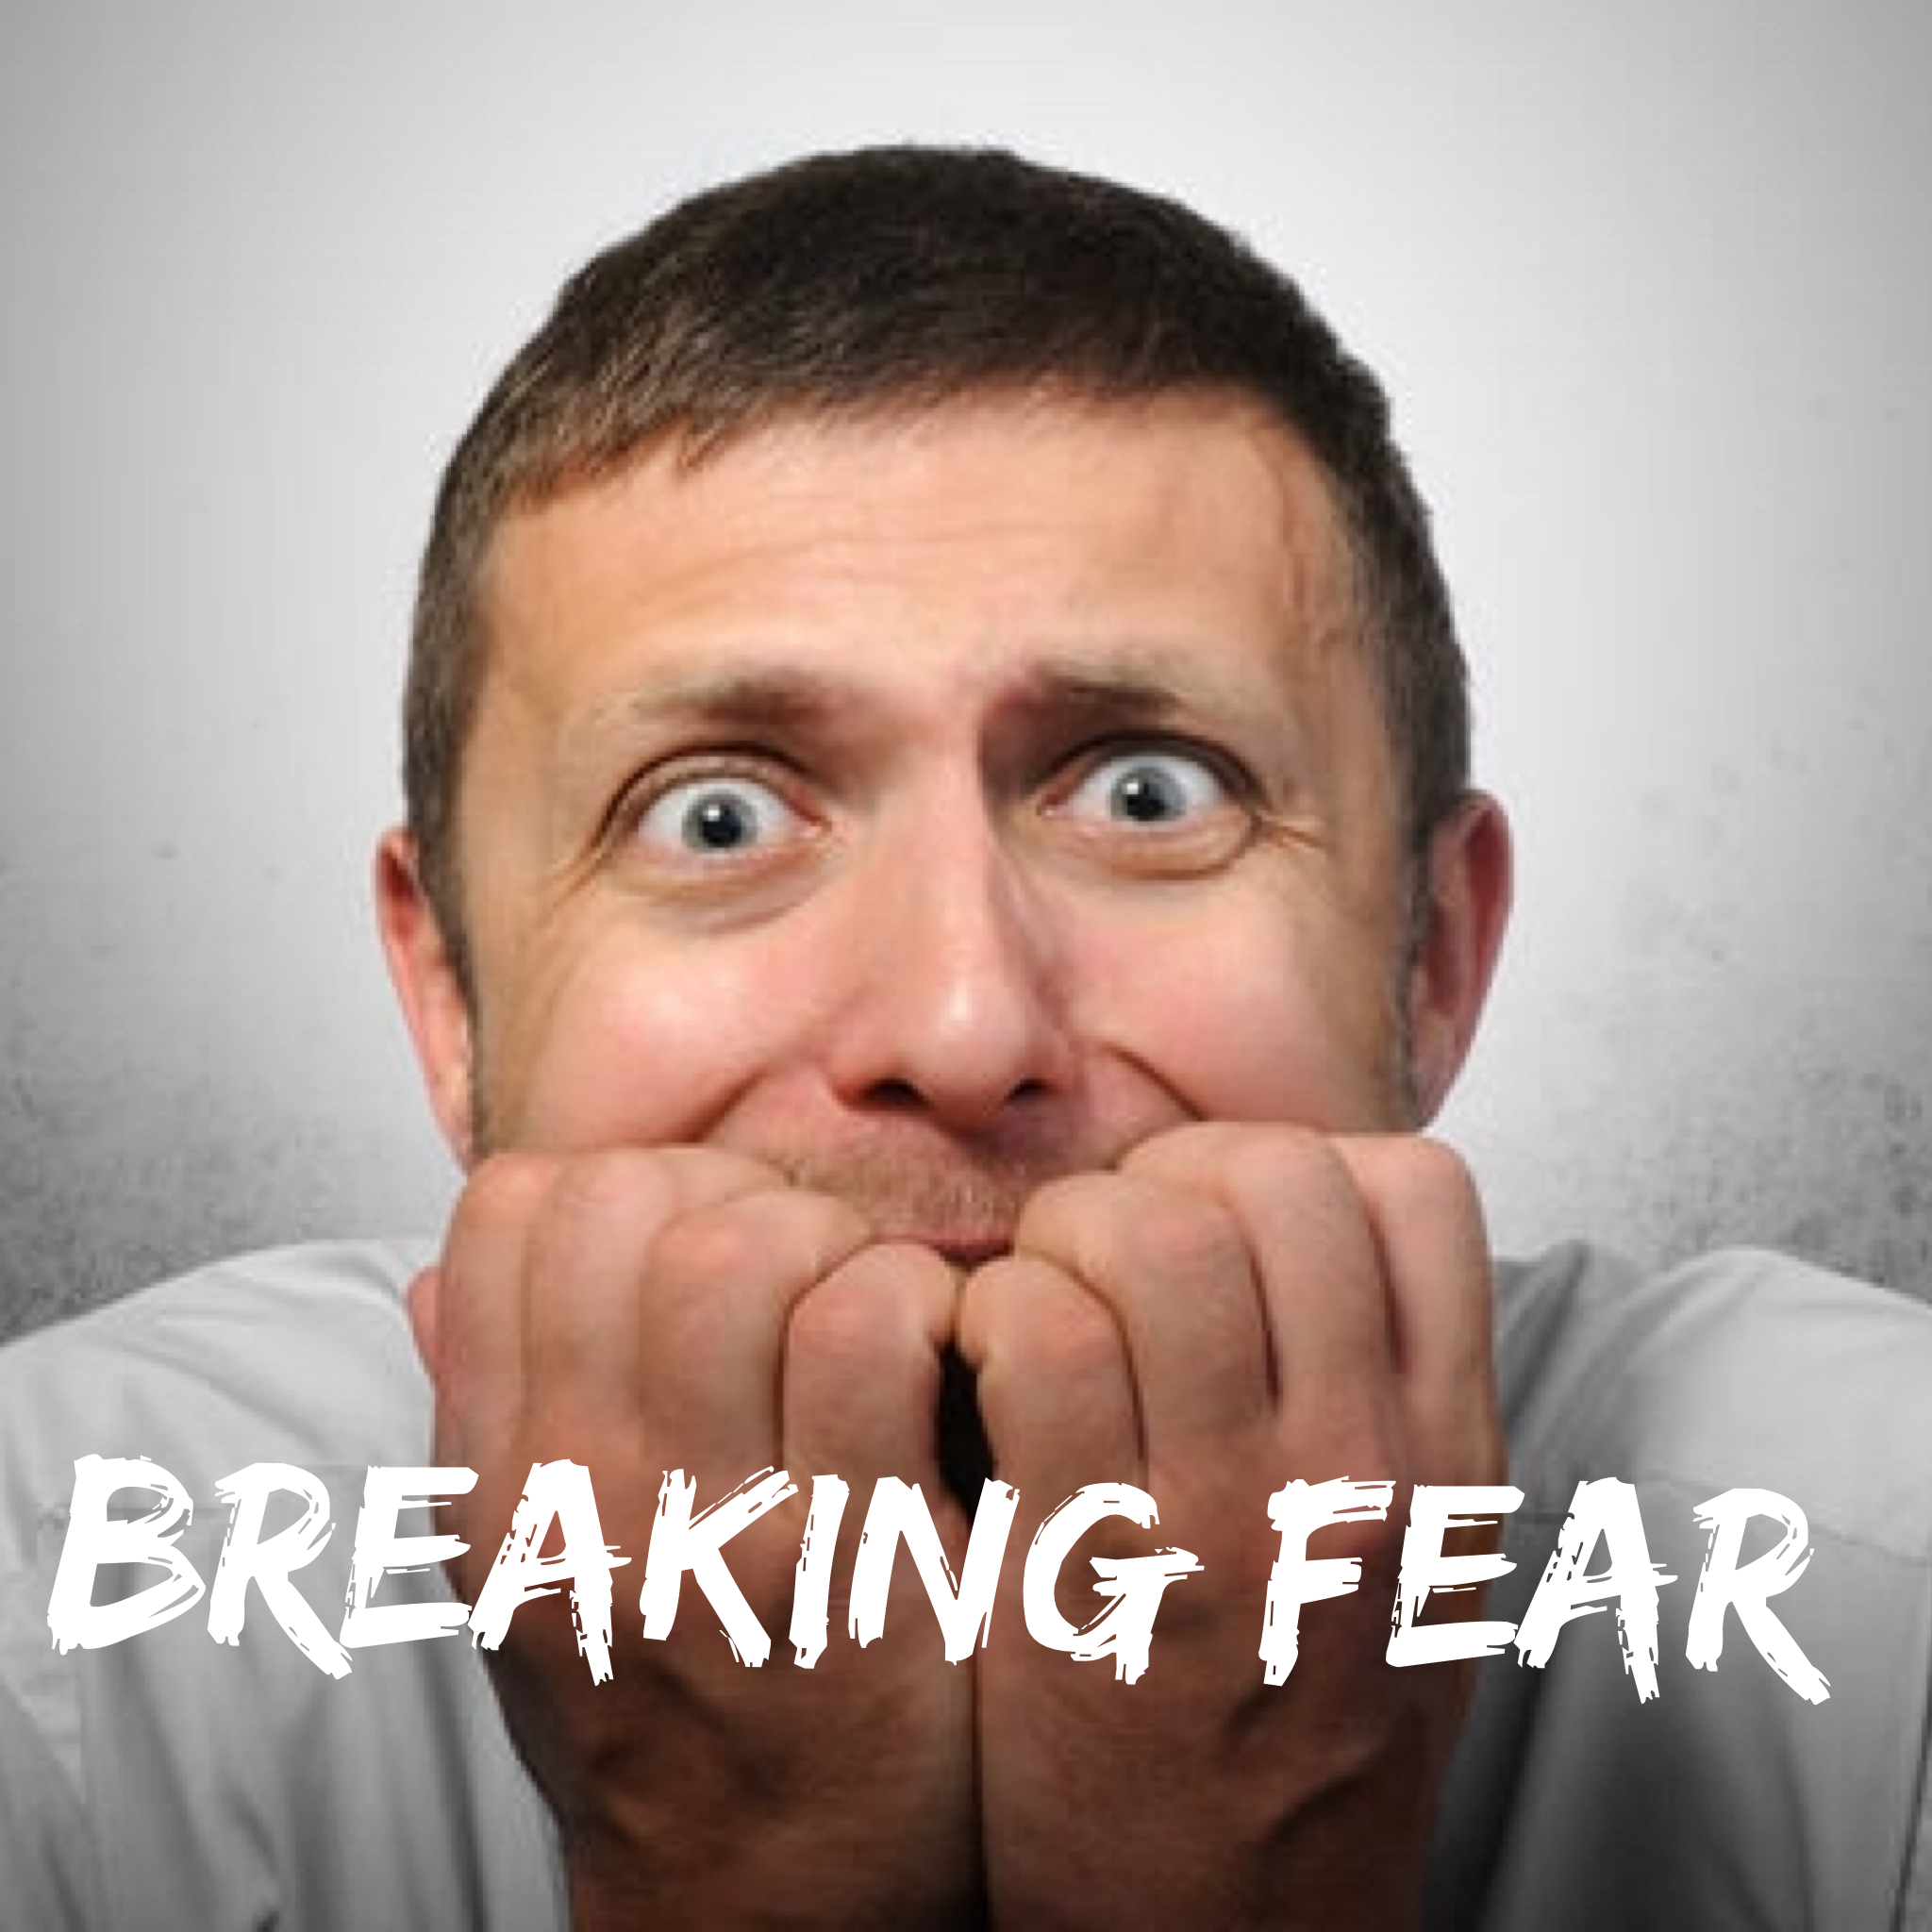 Breaking Fear: How You Can Use Fear Against Itself To Gain Courage, Take Action, and Live the Life You've Always Wanted